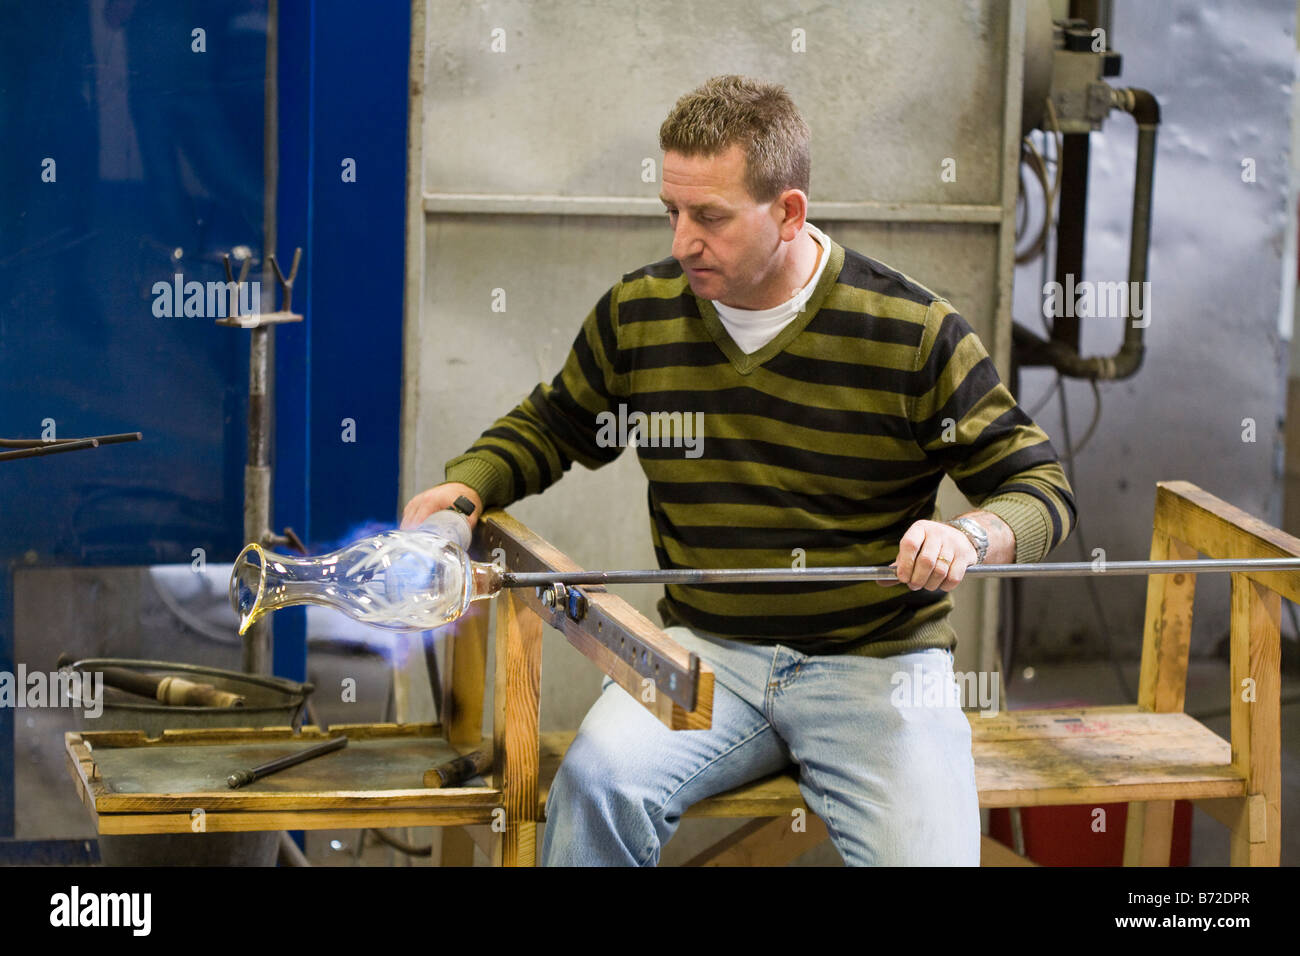 Reheating the Crystal: A worker in the crystal factory rotates and reheats a piece of blown crystal glass using - Stock Image